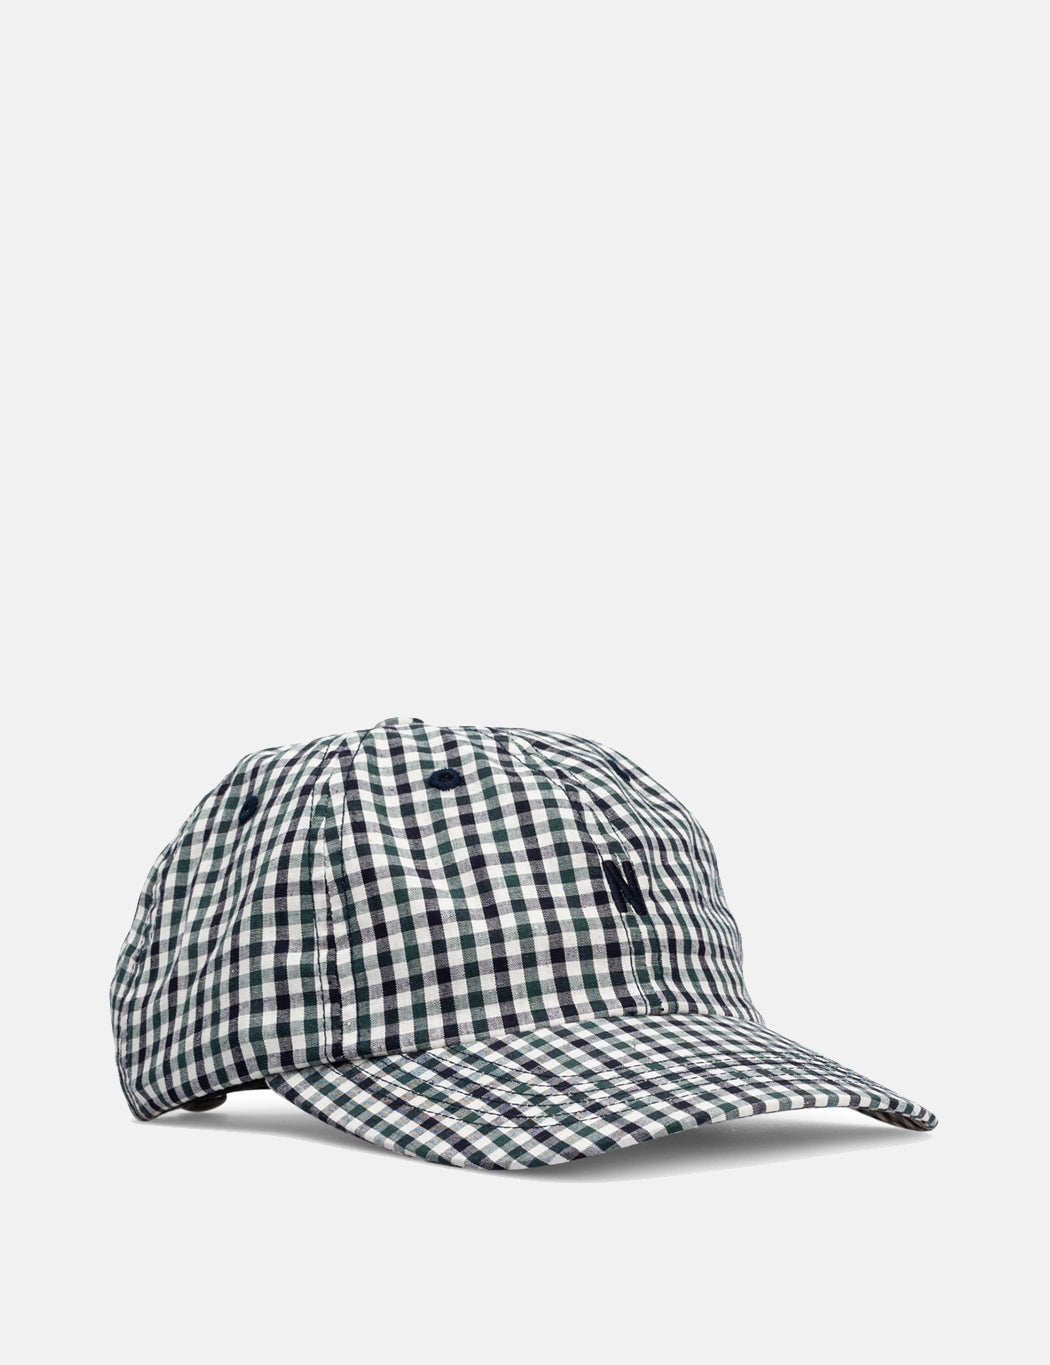 1b41ab2884 Norse Projects Gingham Sports Cap - Dark Navy Blue | URBAN EXCESS.